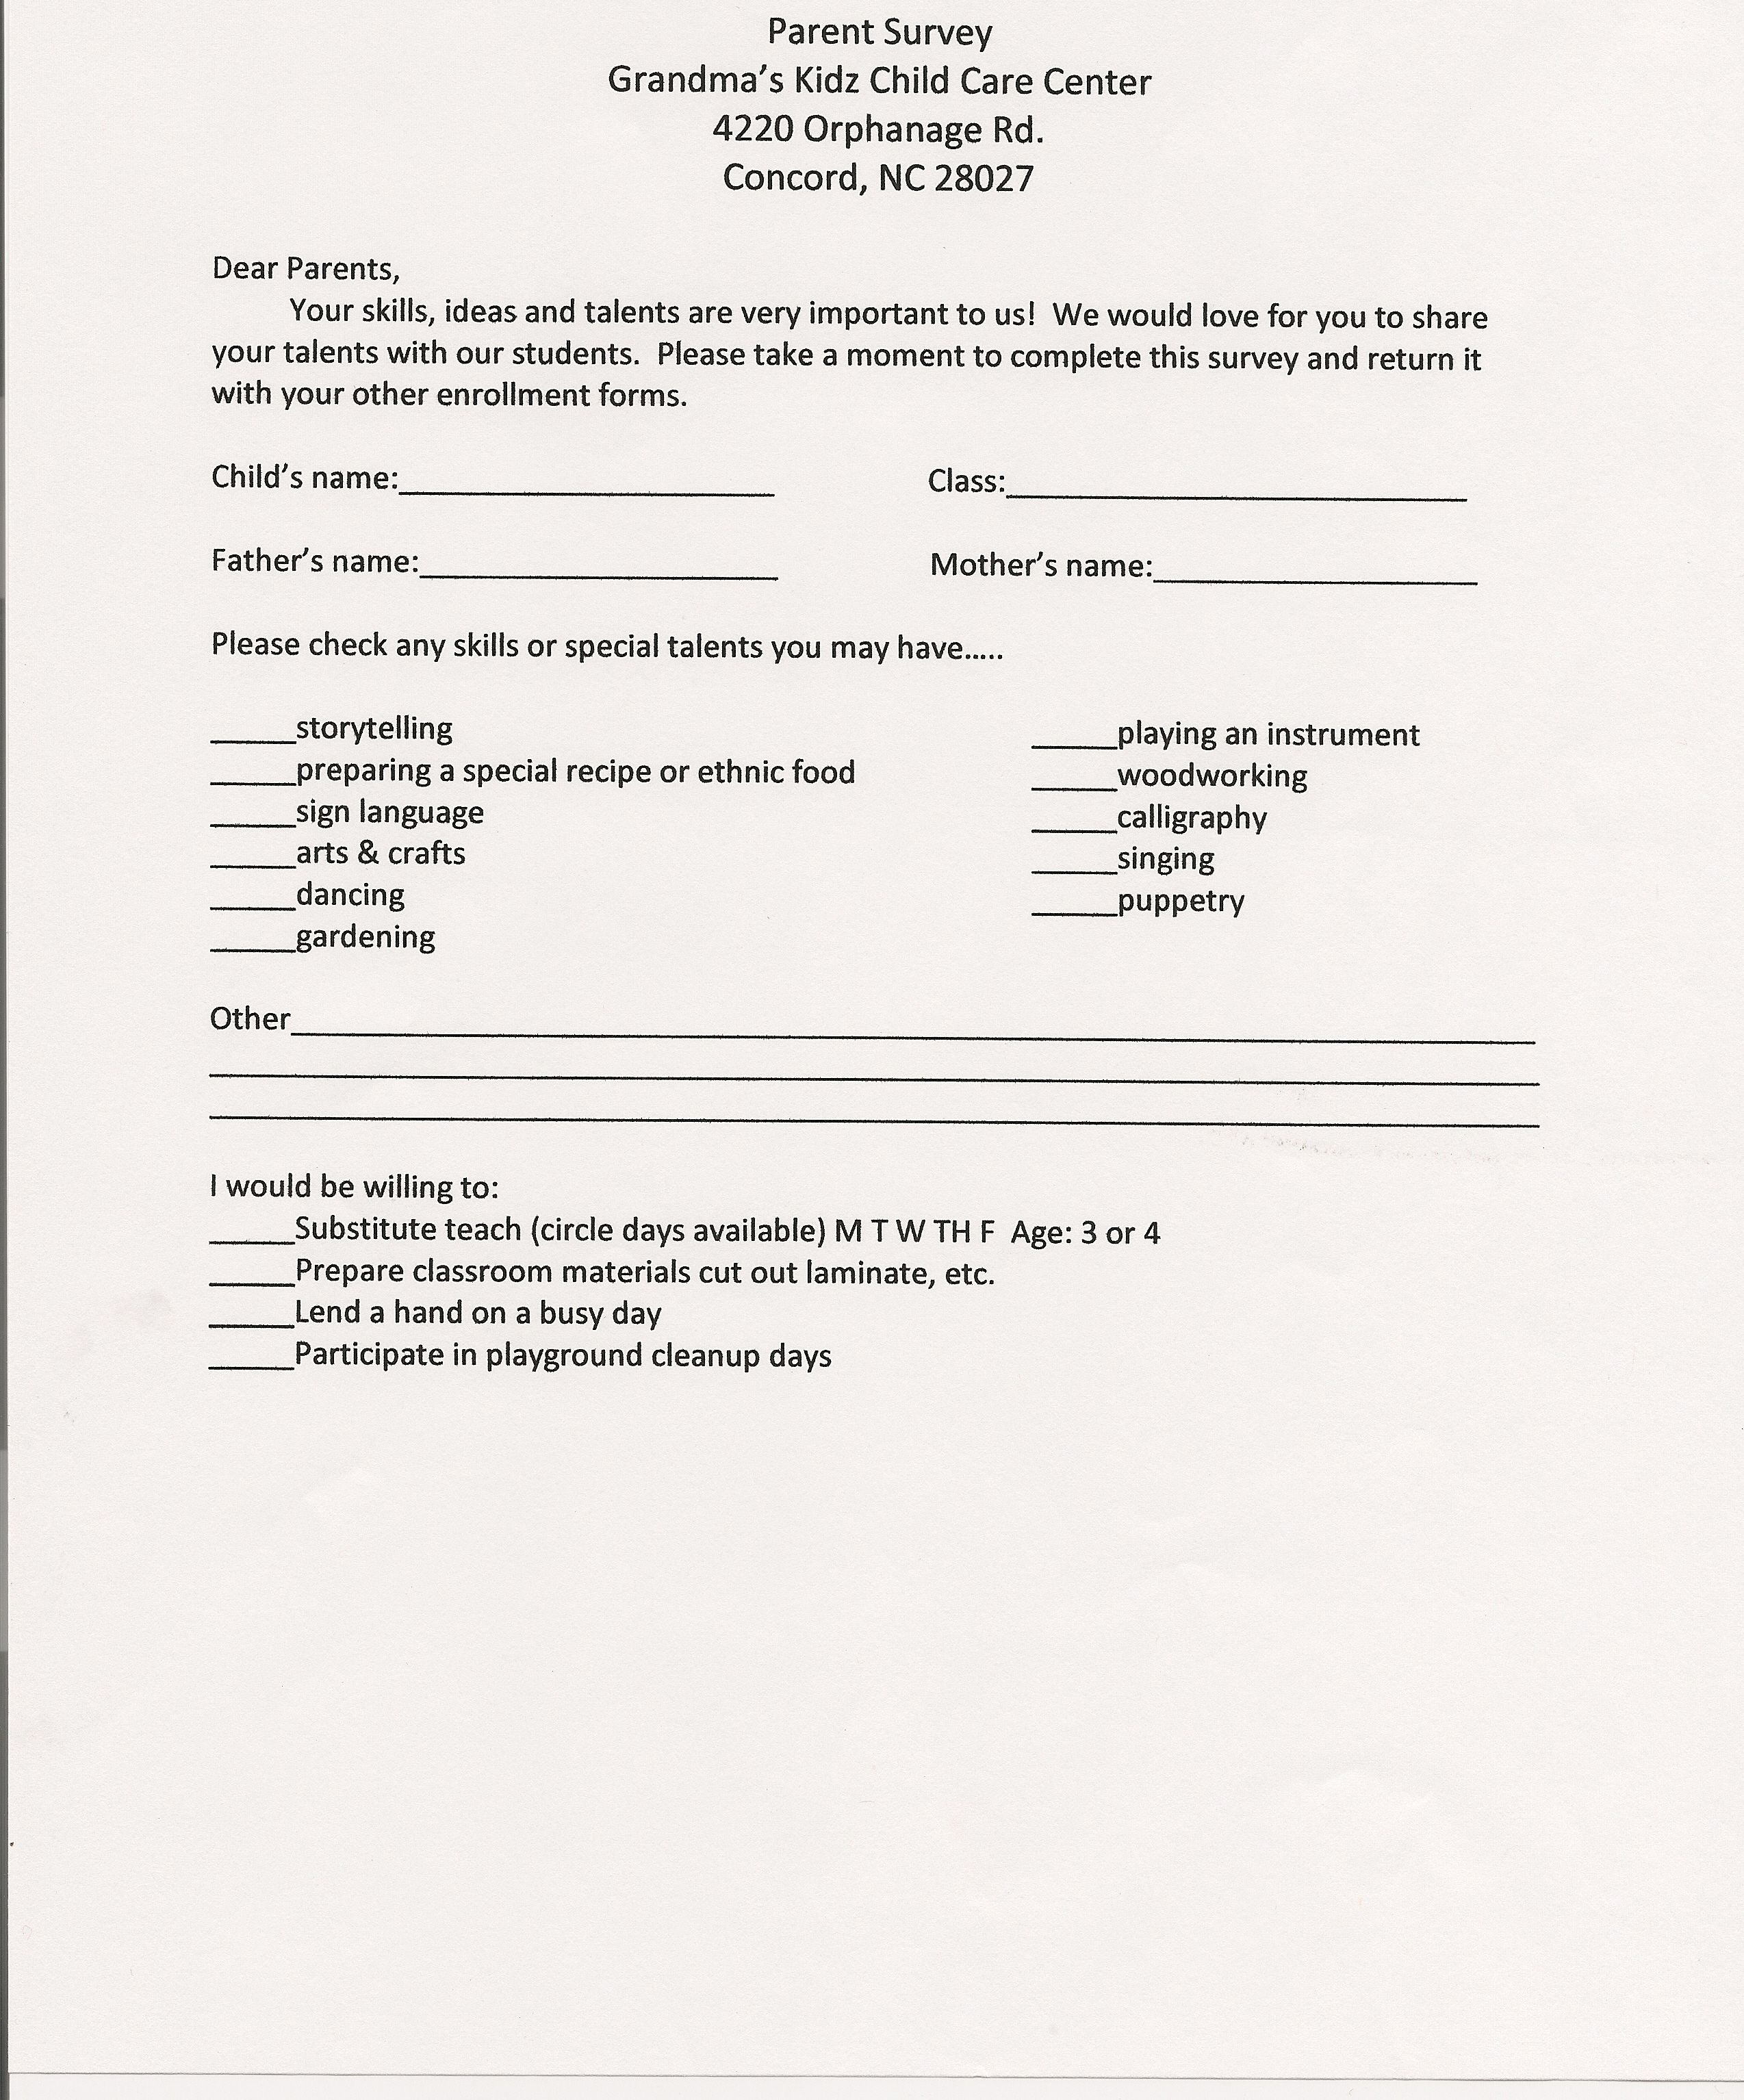 Parent Survey Forms Printable Prek